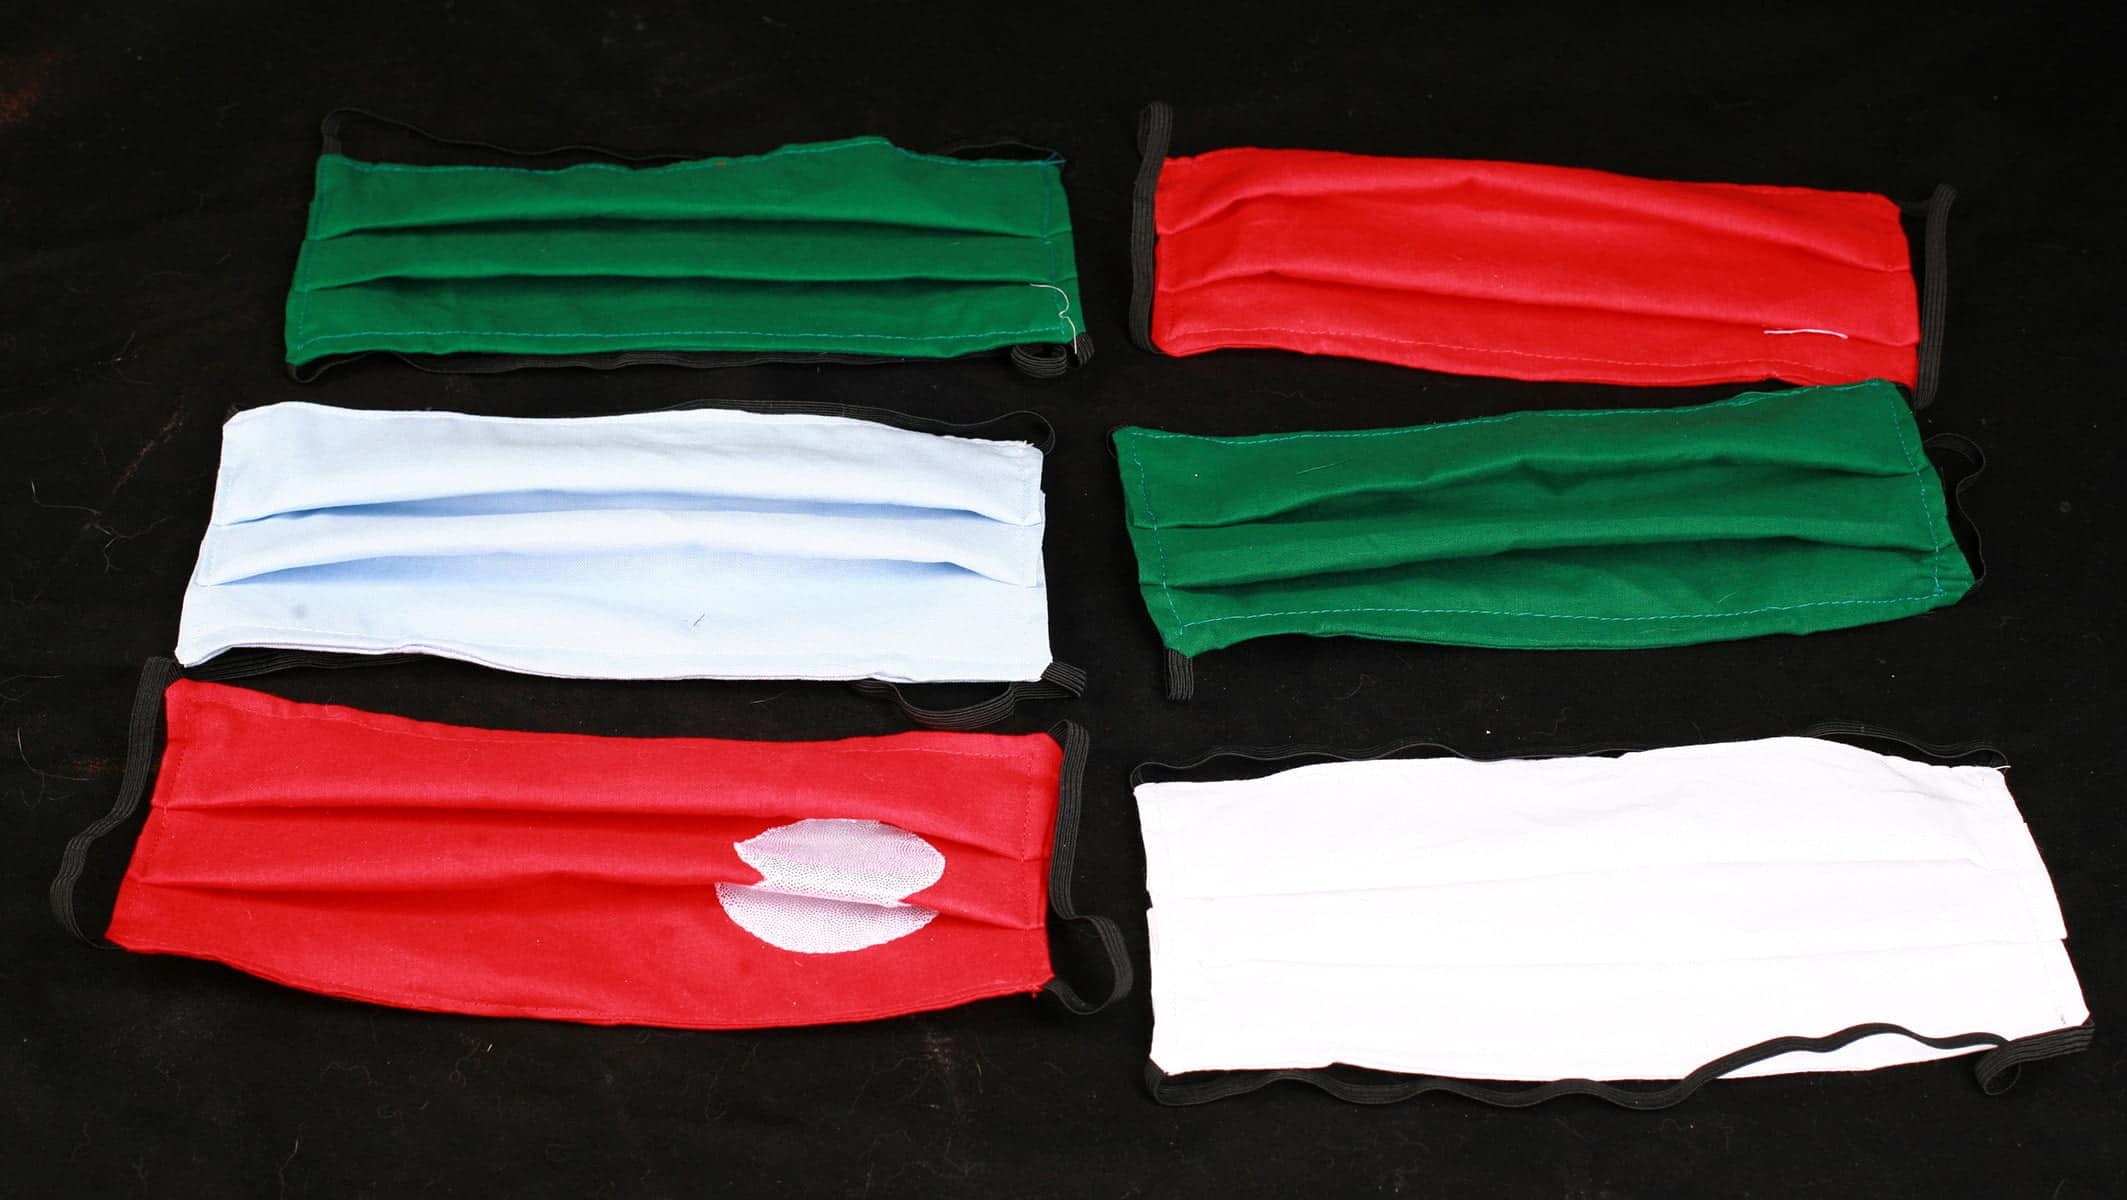 A selection of face masks in Holiday colours - 2 green, 2 red, 1 white, 1 light blue.